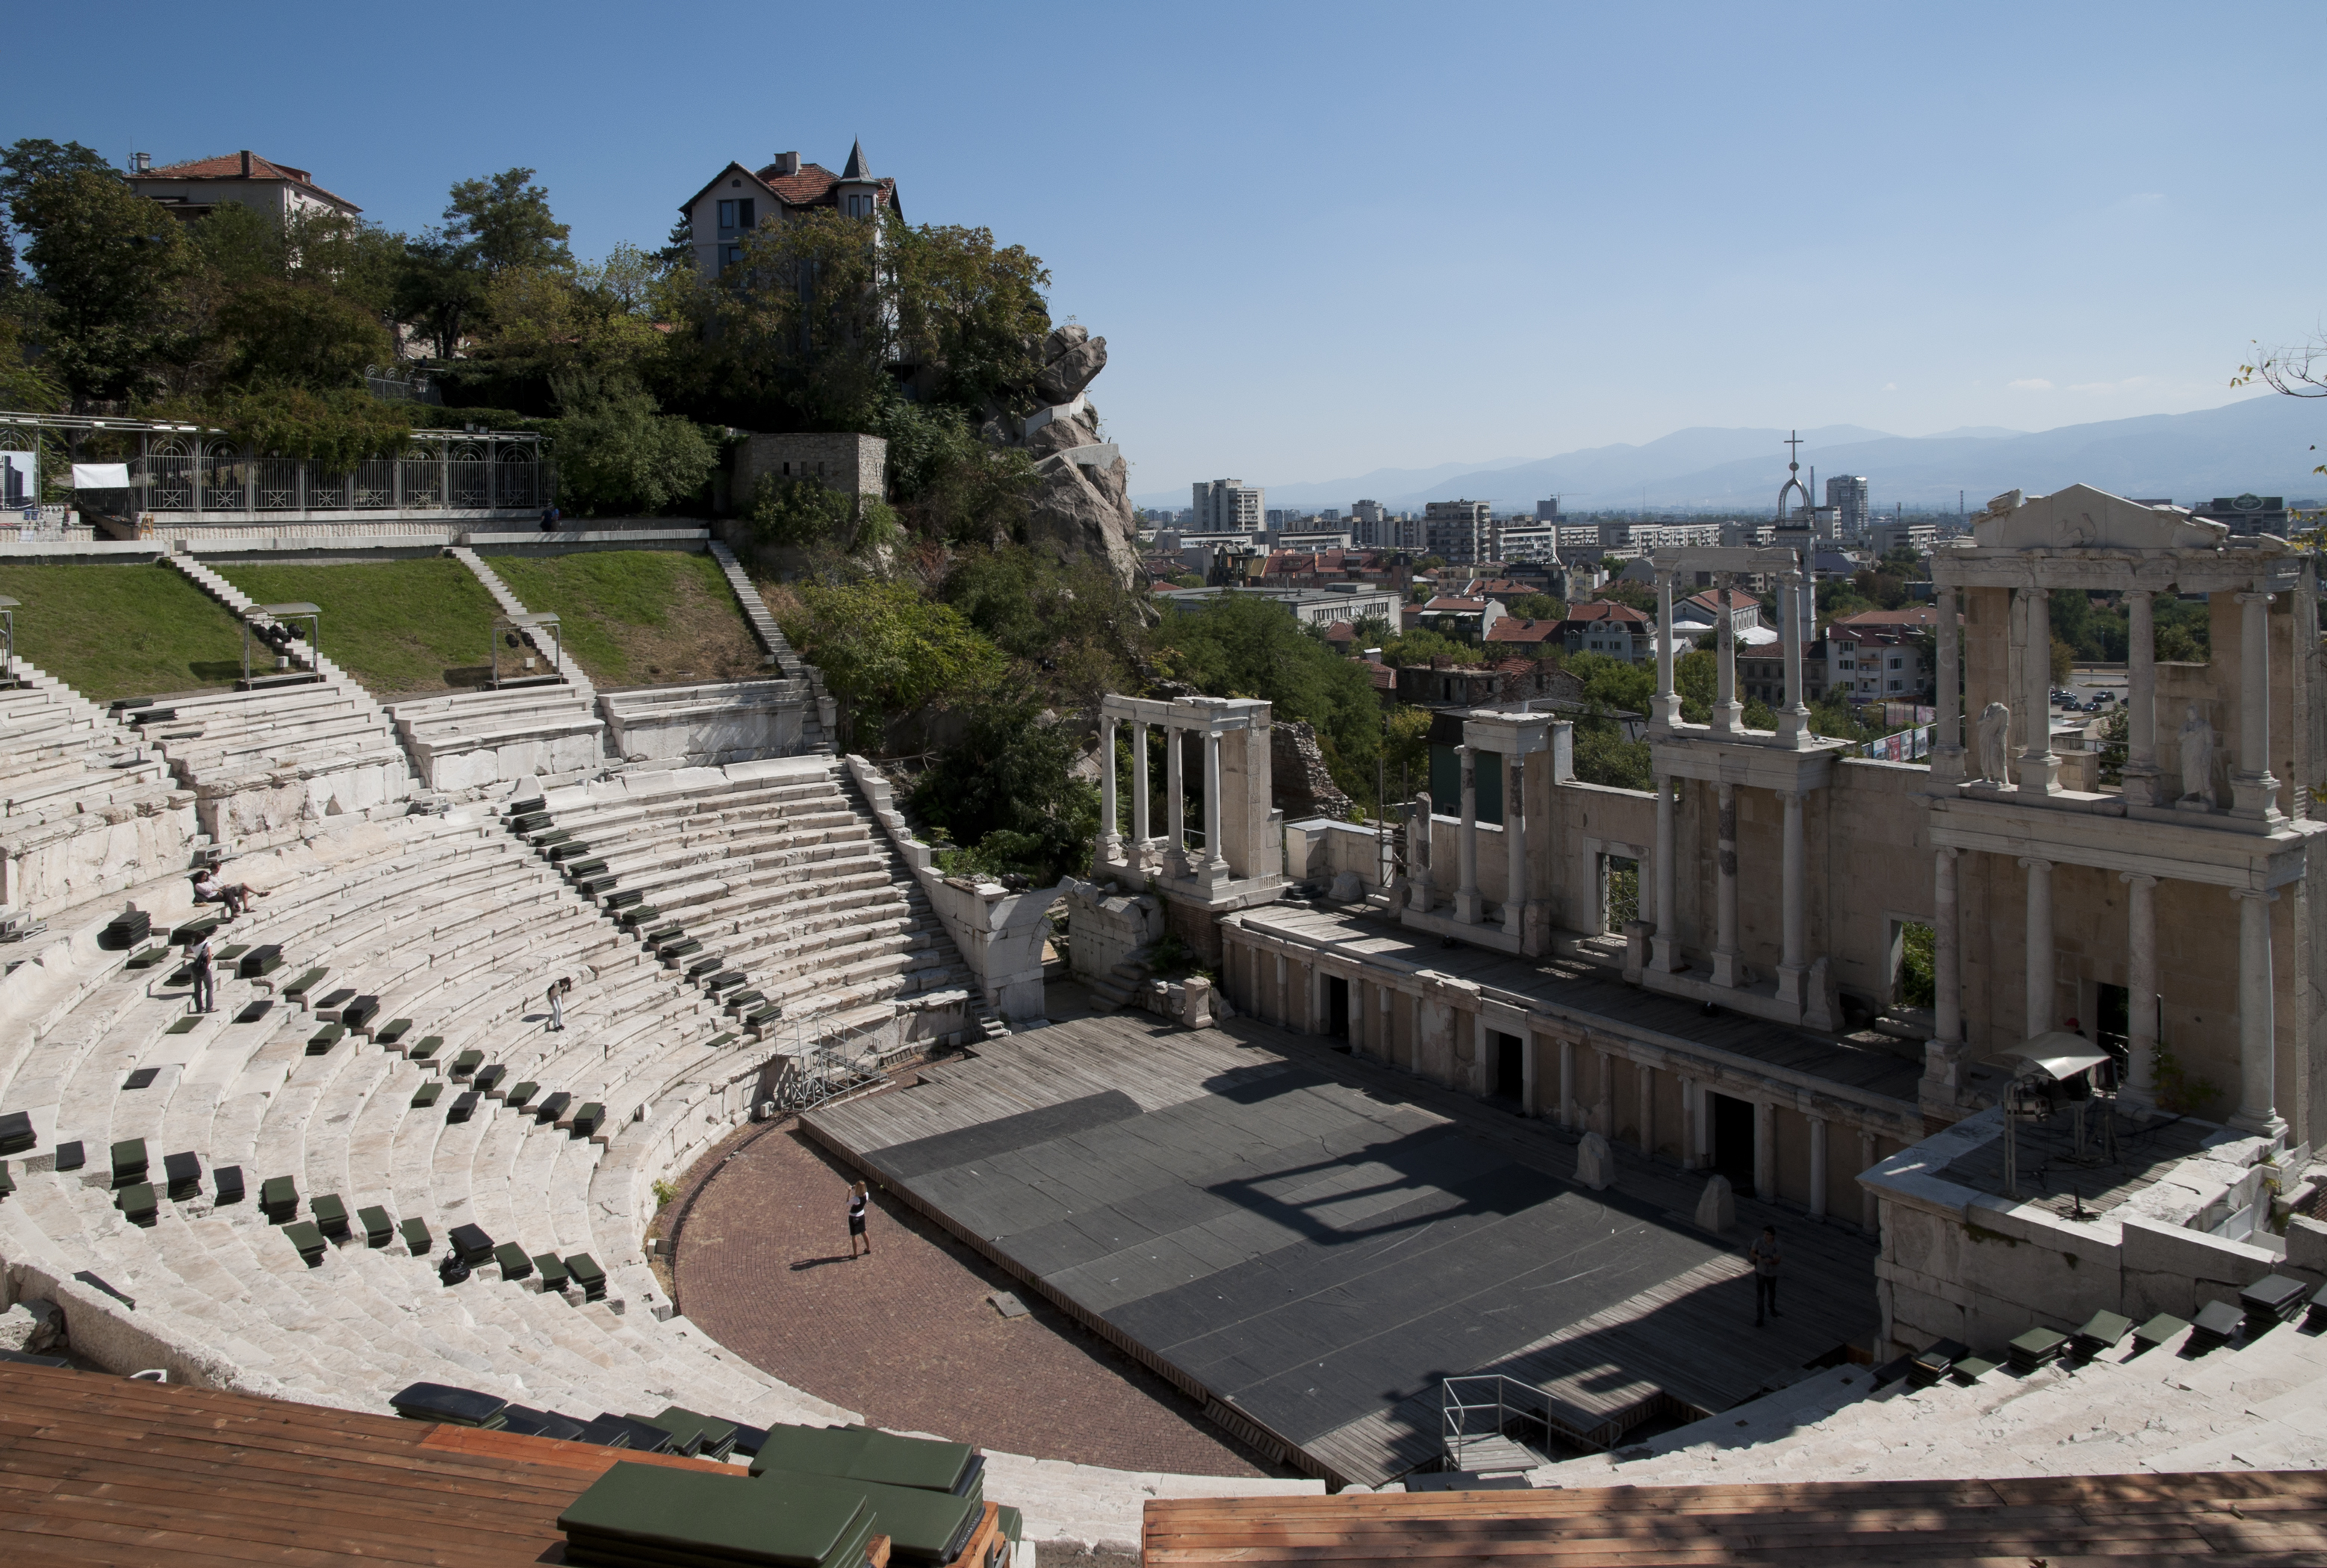 google maps my location with File Roman Theatre Plovdiv 2 on Showthread together with Showthread in addition File Glees Germany Maria Laach Abbey 01 in addition File Pet C5 99 C3 ADn  R C5 AF C5 BEov C3 BD sad  r C5 AF C5 BEe in addition Showthread.